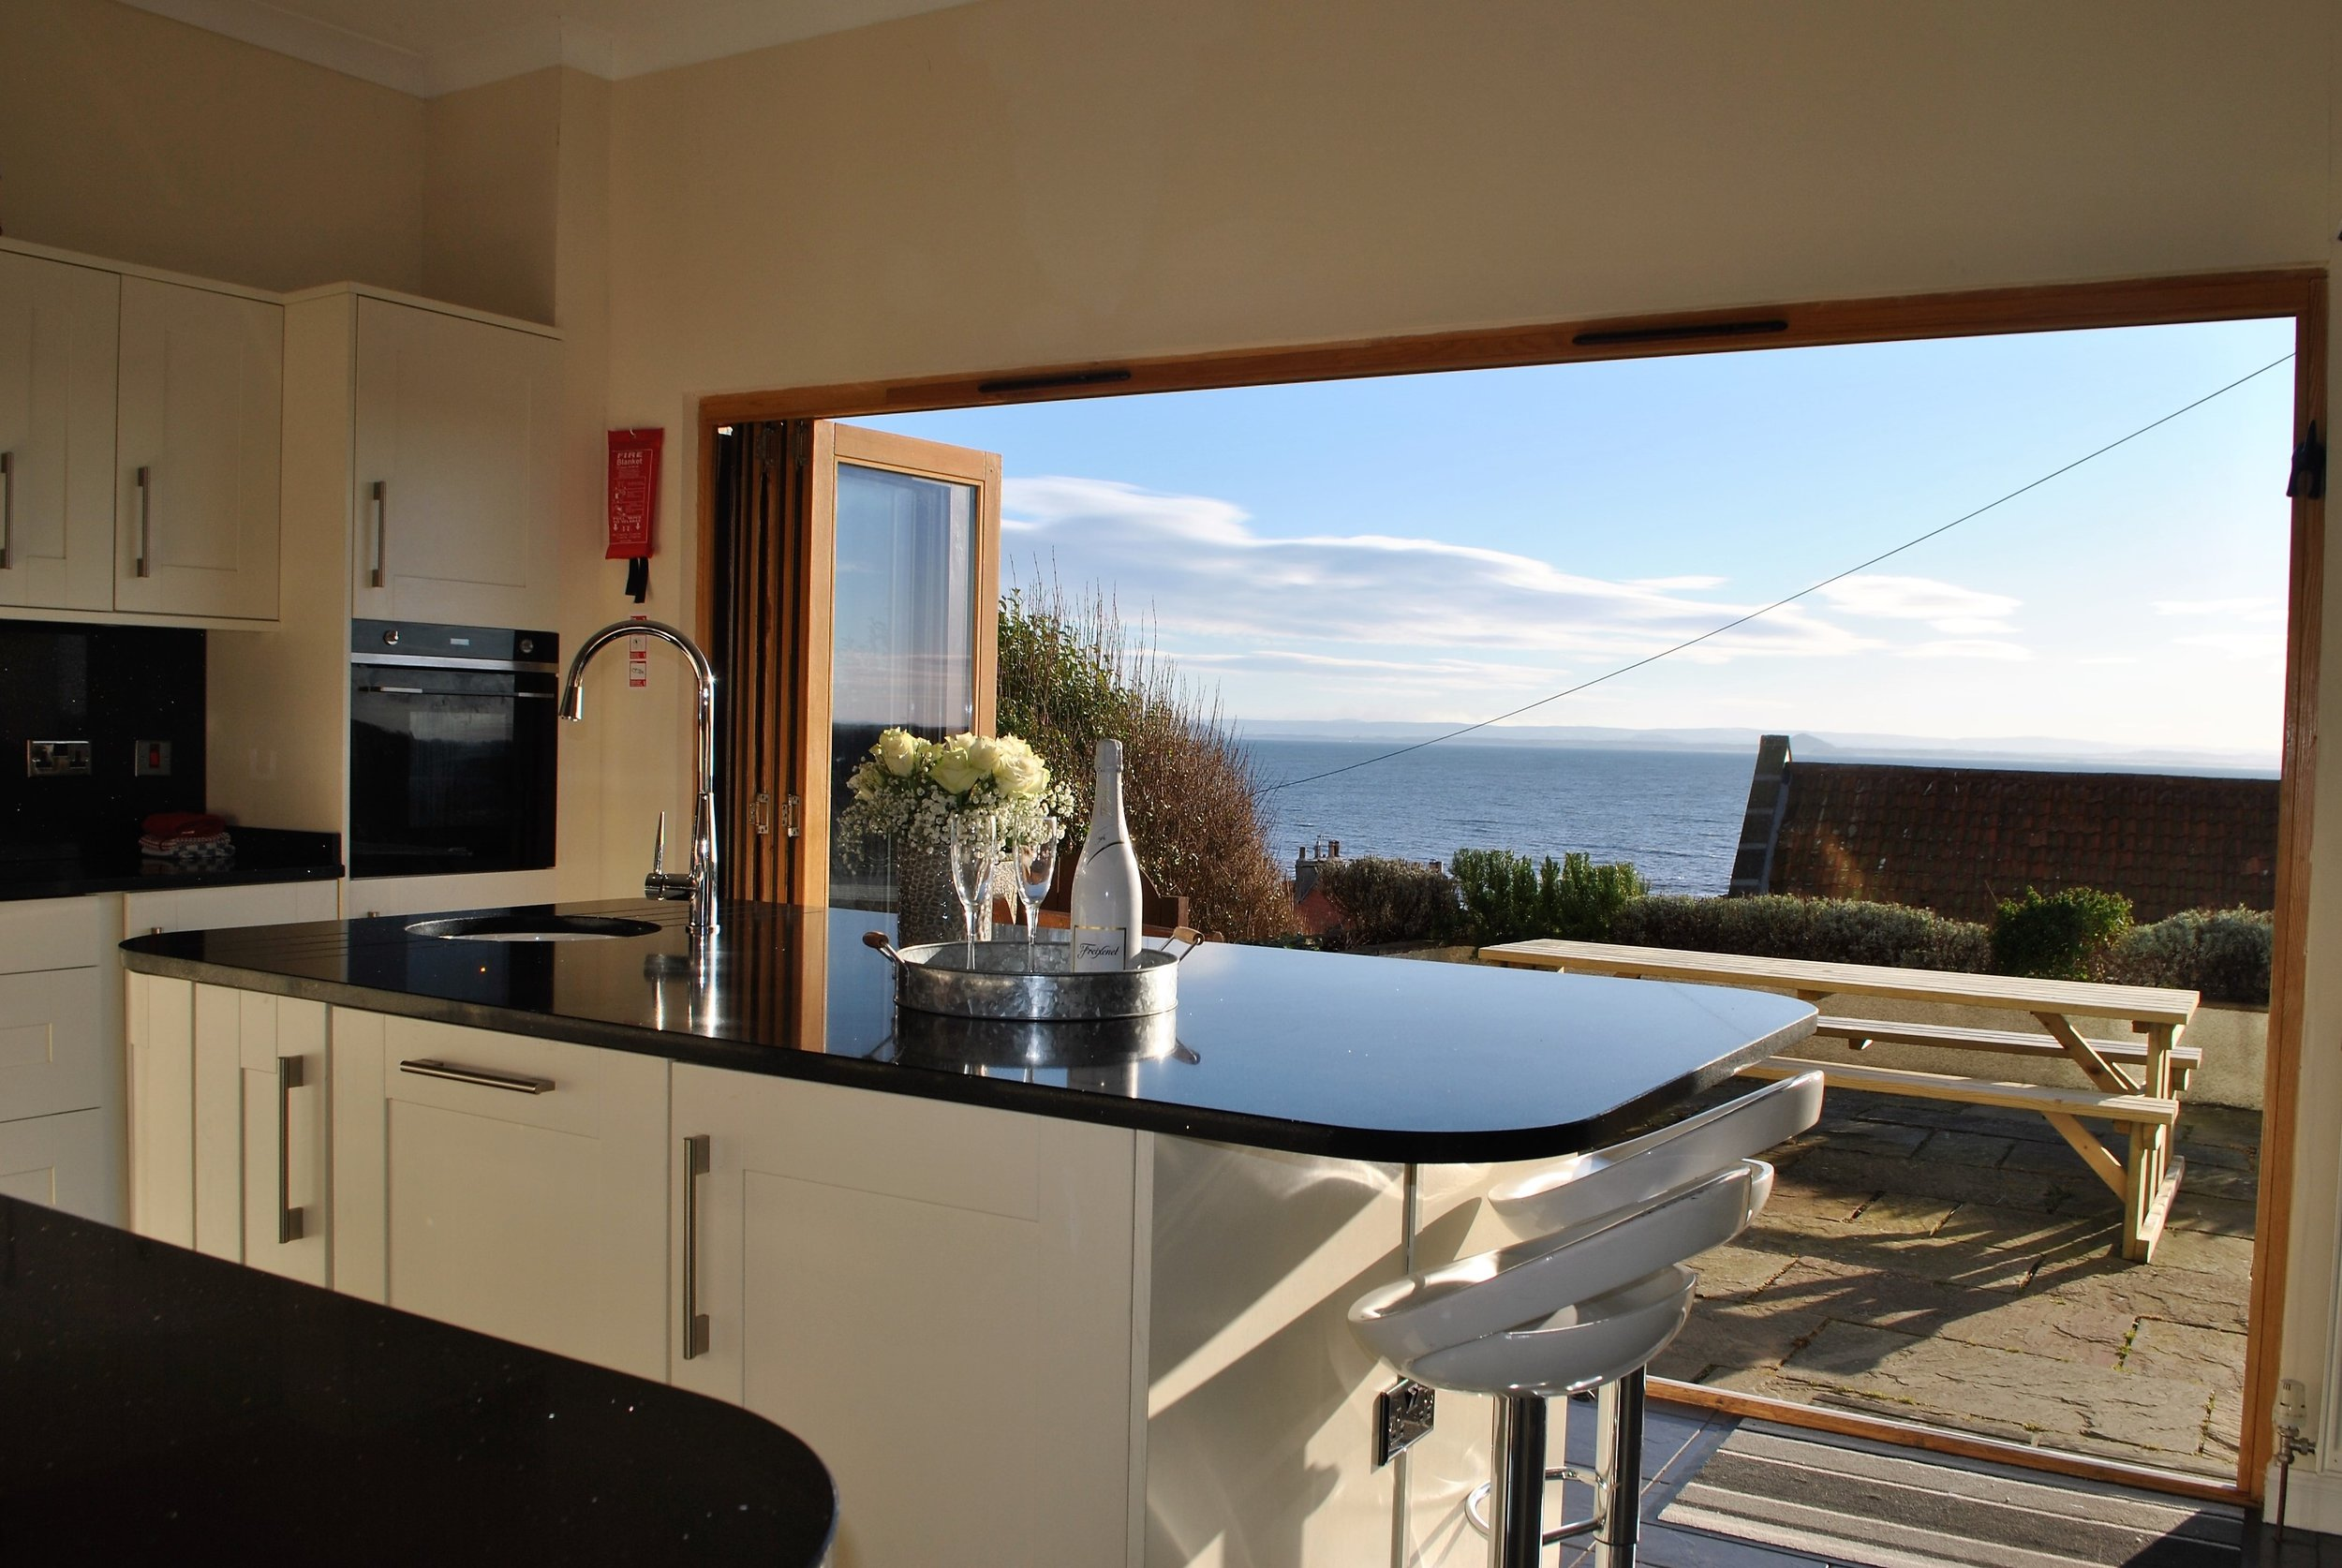 The stunning views from the dining kitchen